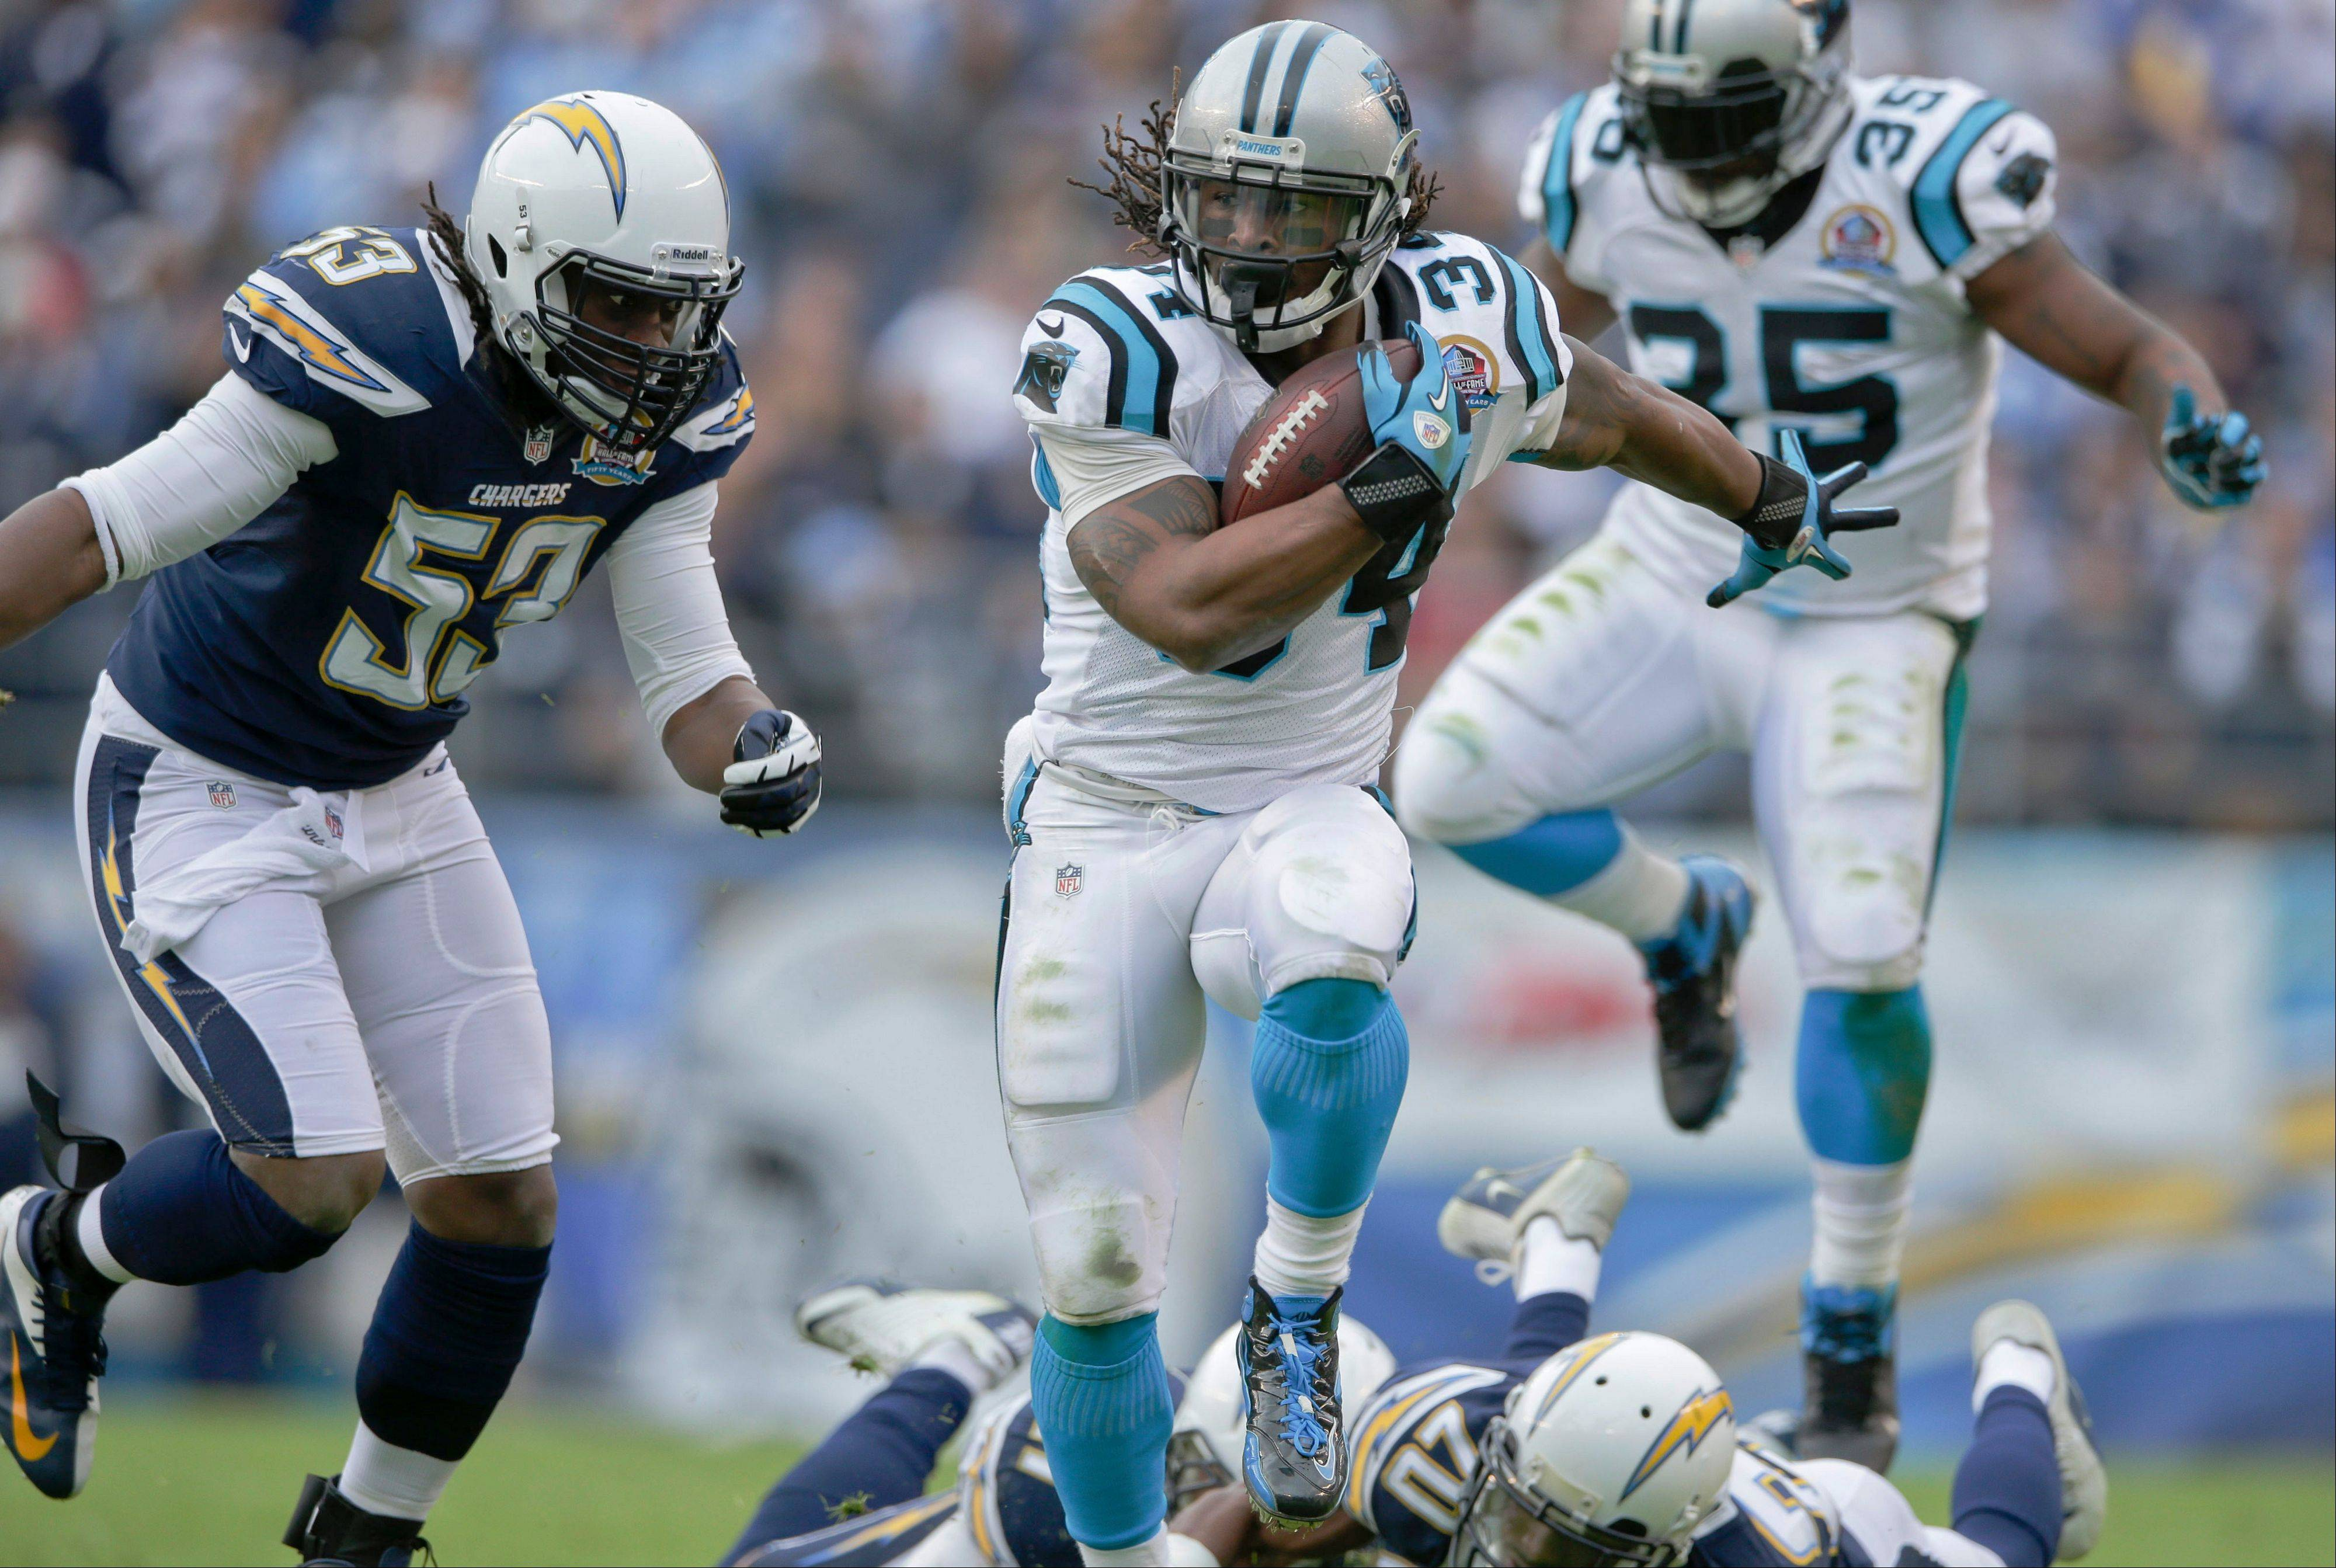 Panthers RB DeAngelo Williams has scored in back-to-back weeks and figures to be a great play this week with the 4-10 Raiders in town.